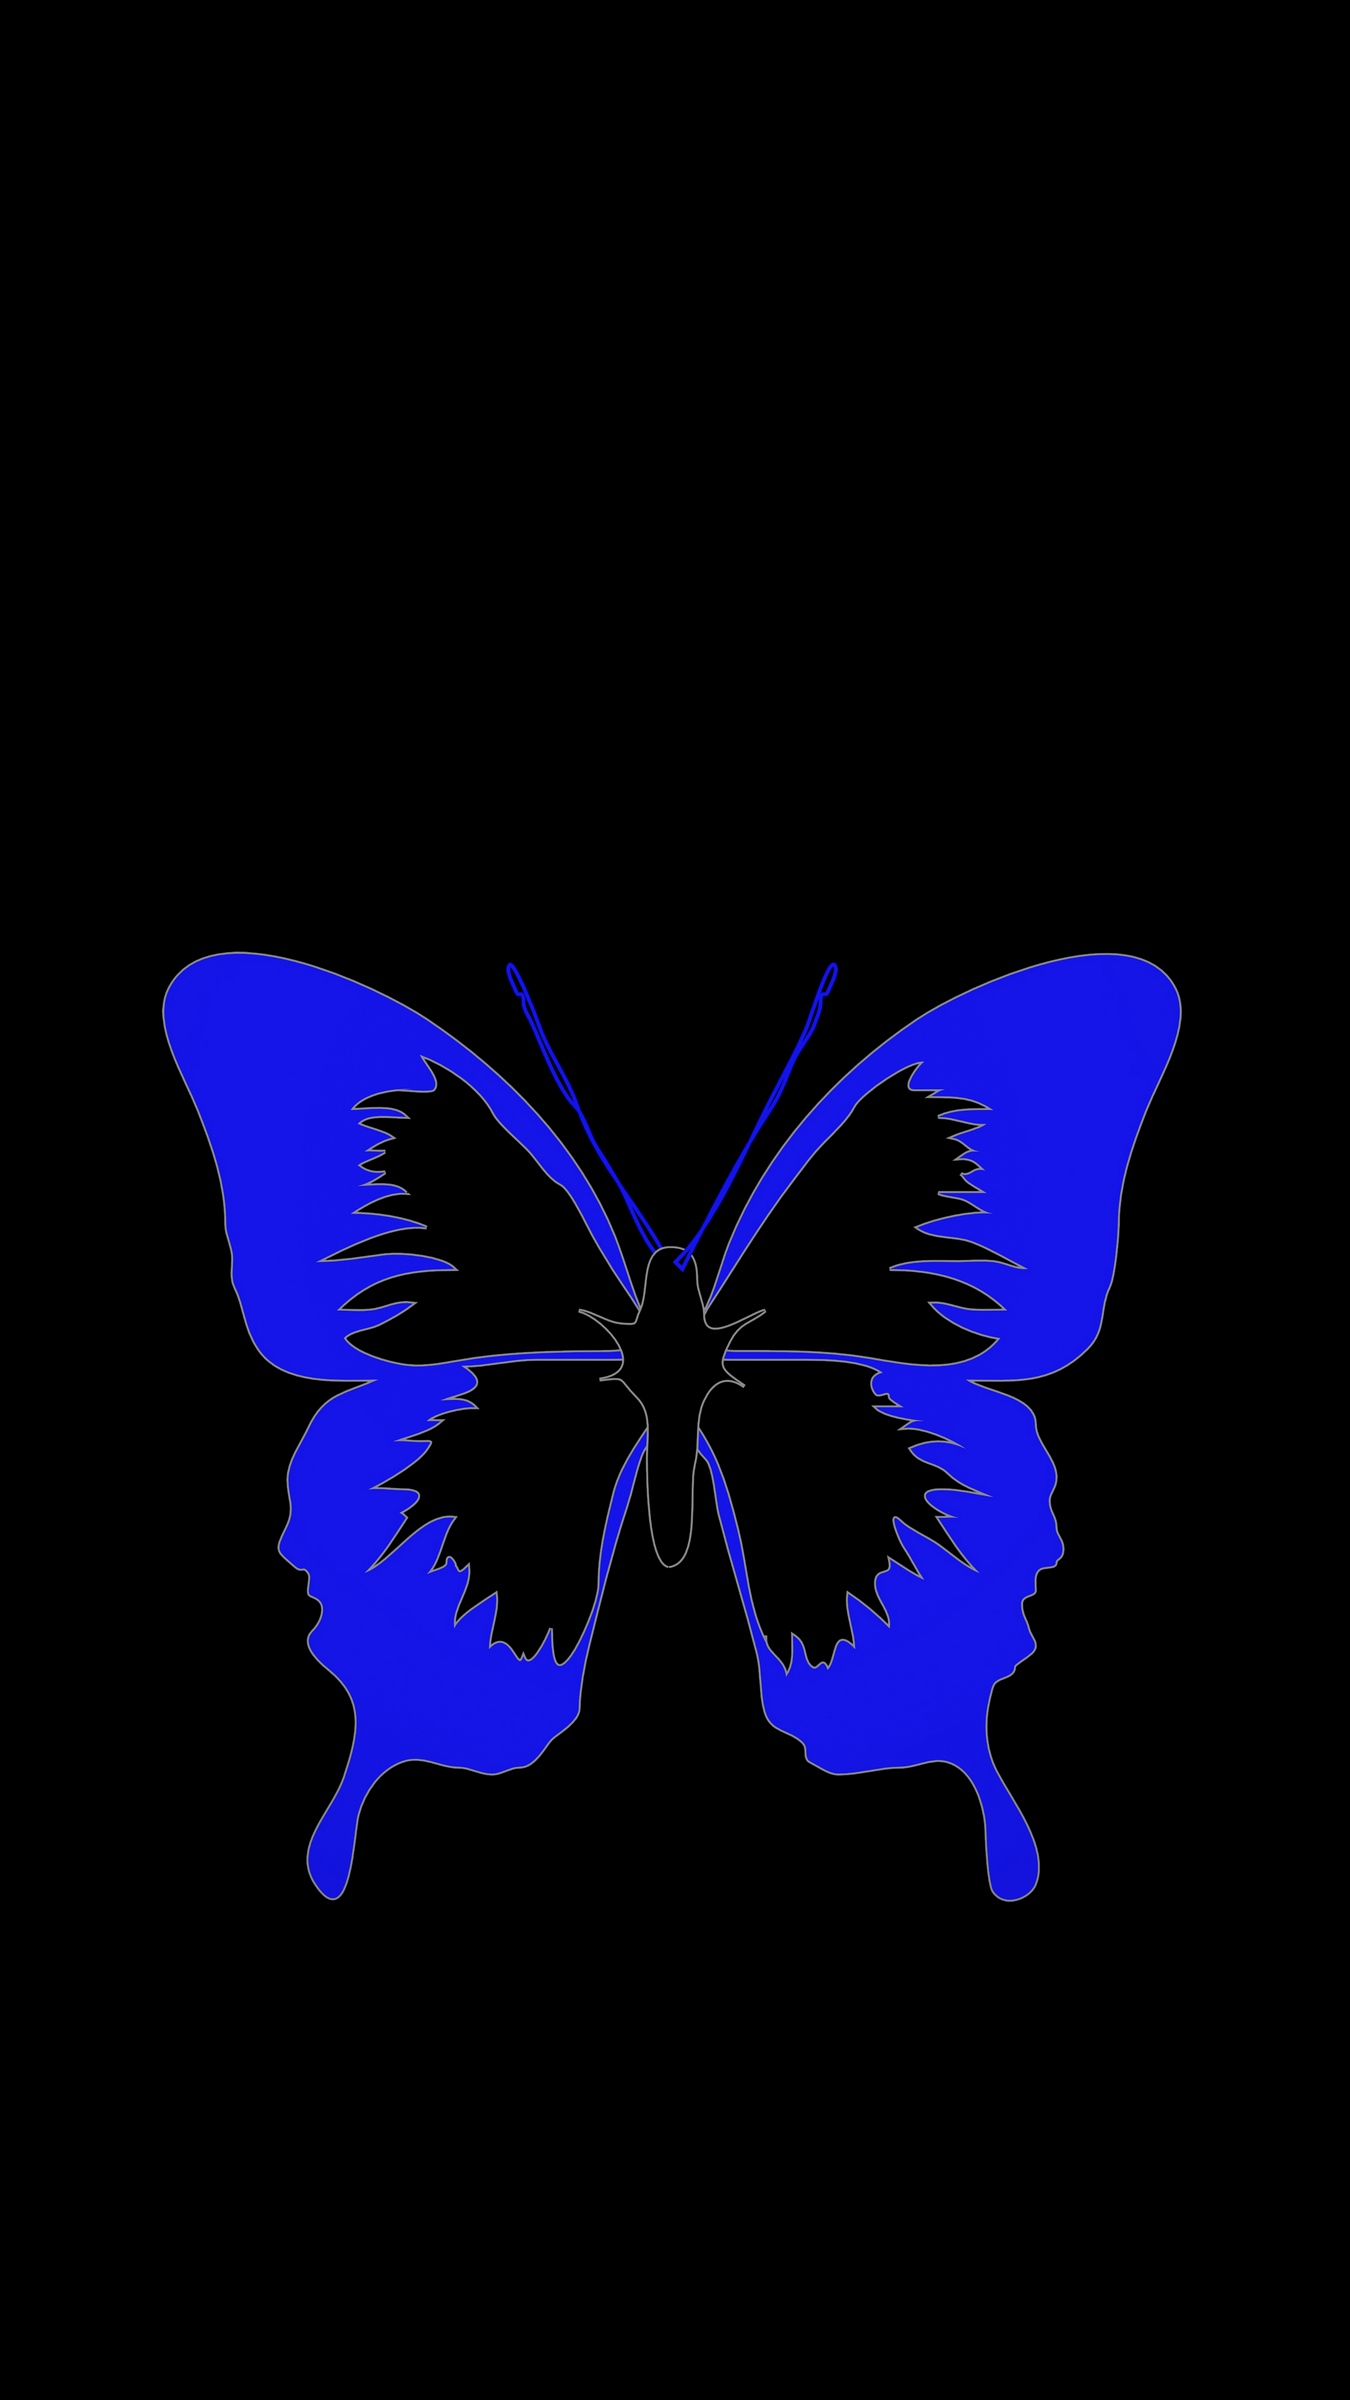 Wallpaper Butterfly Minimalism Black Blue Black And Blue Wallpaper 4k 1854254 Hd Wallpaper Backgrounds Download